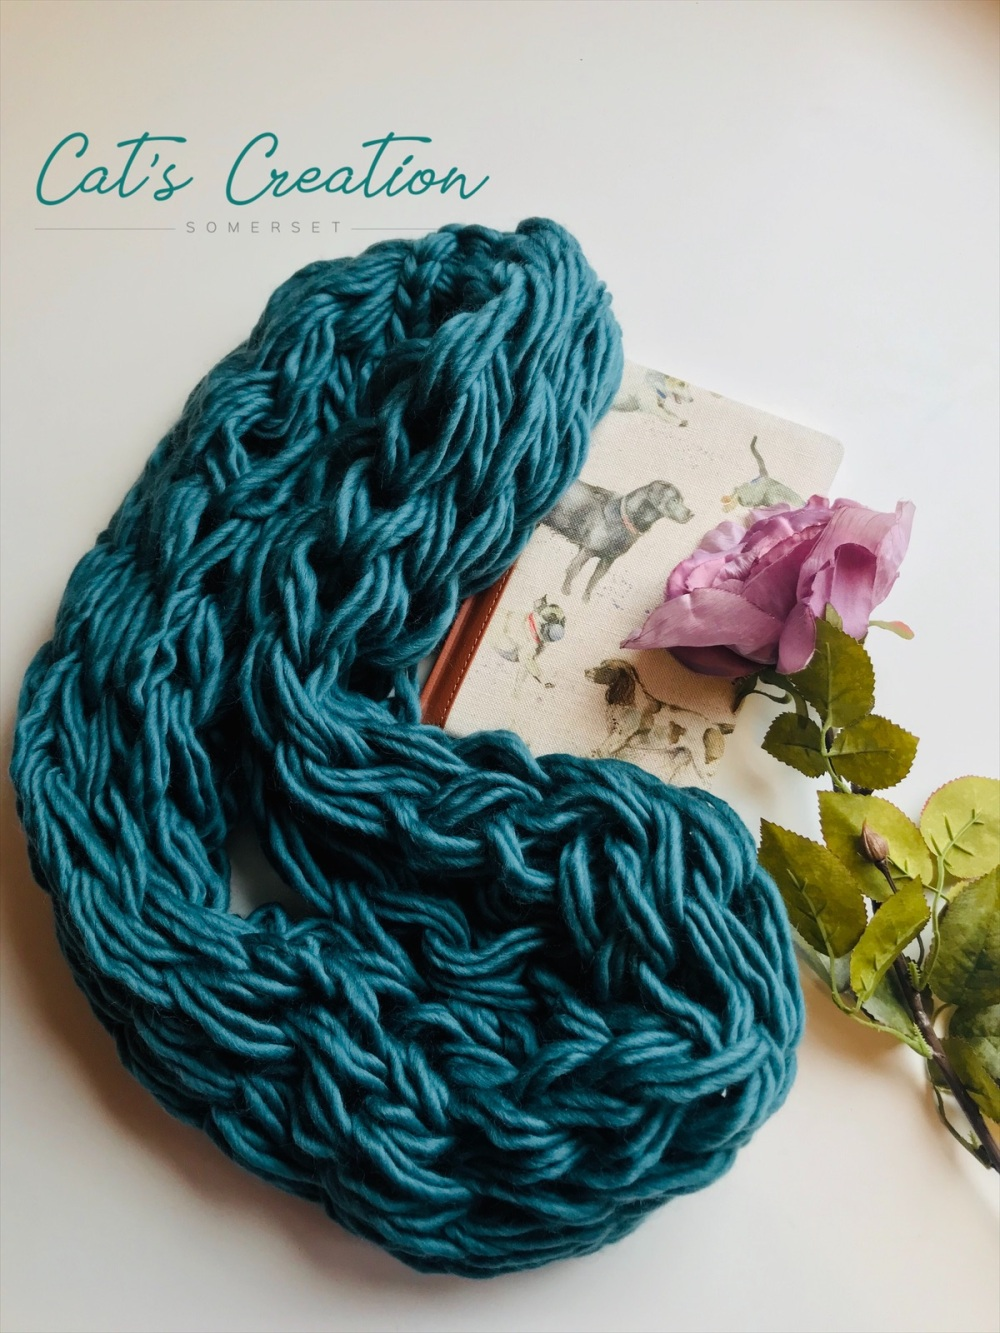 A snood in sea green